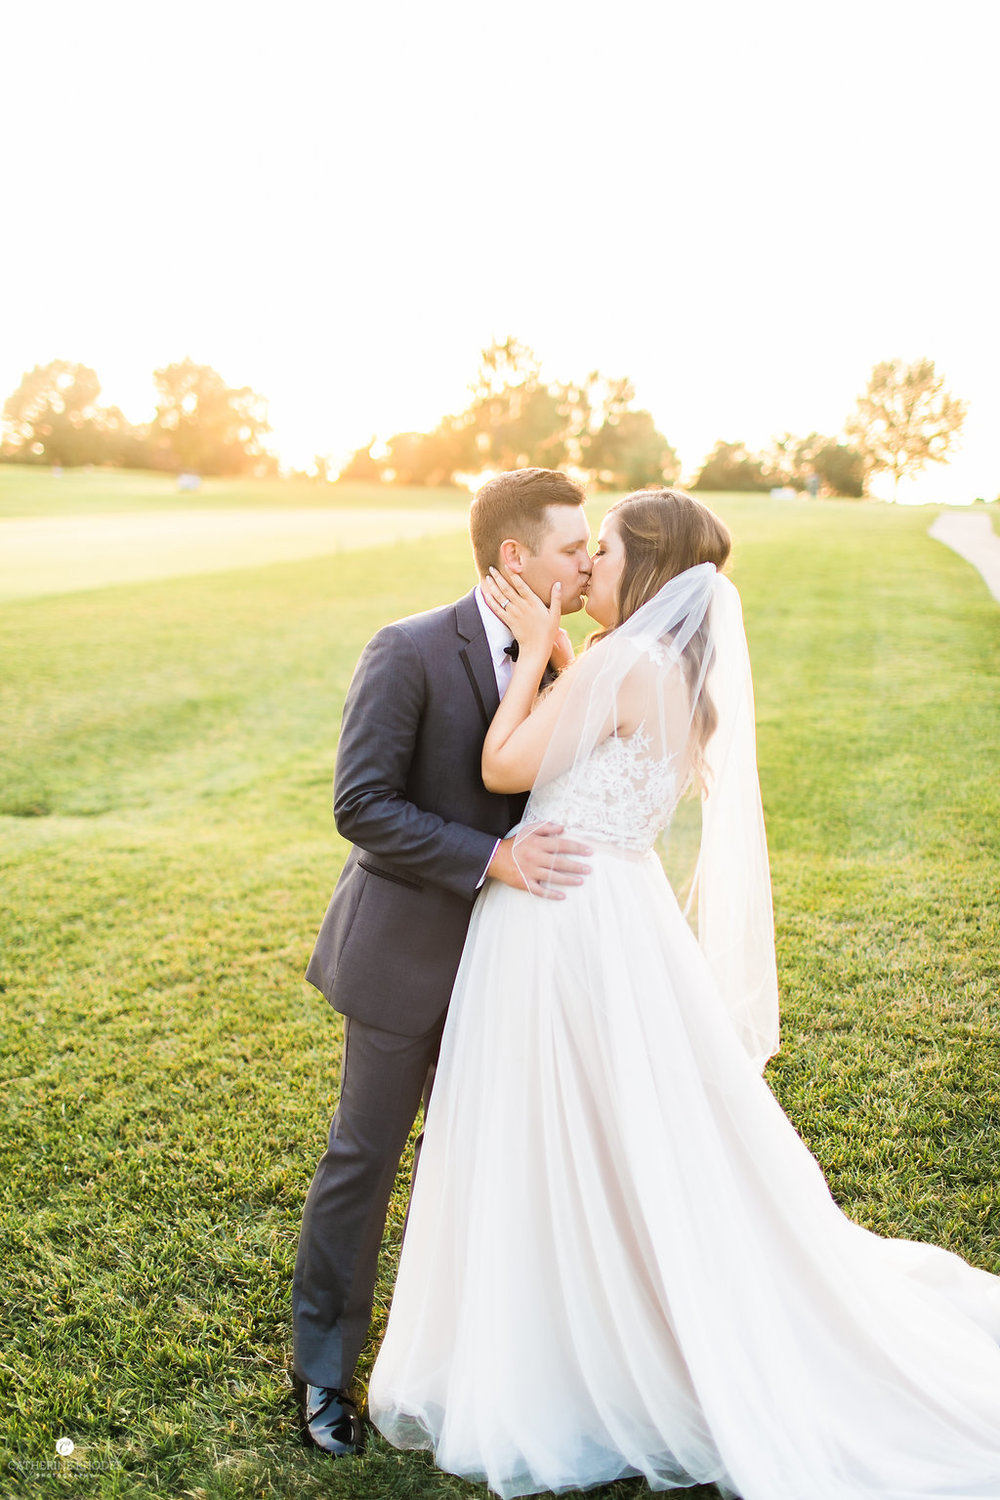 CountryClubofMissouriWedding_AnnaDrew_Portraits_CatherineRhodesPhotography(304of332)-Edit.jpg